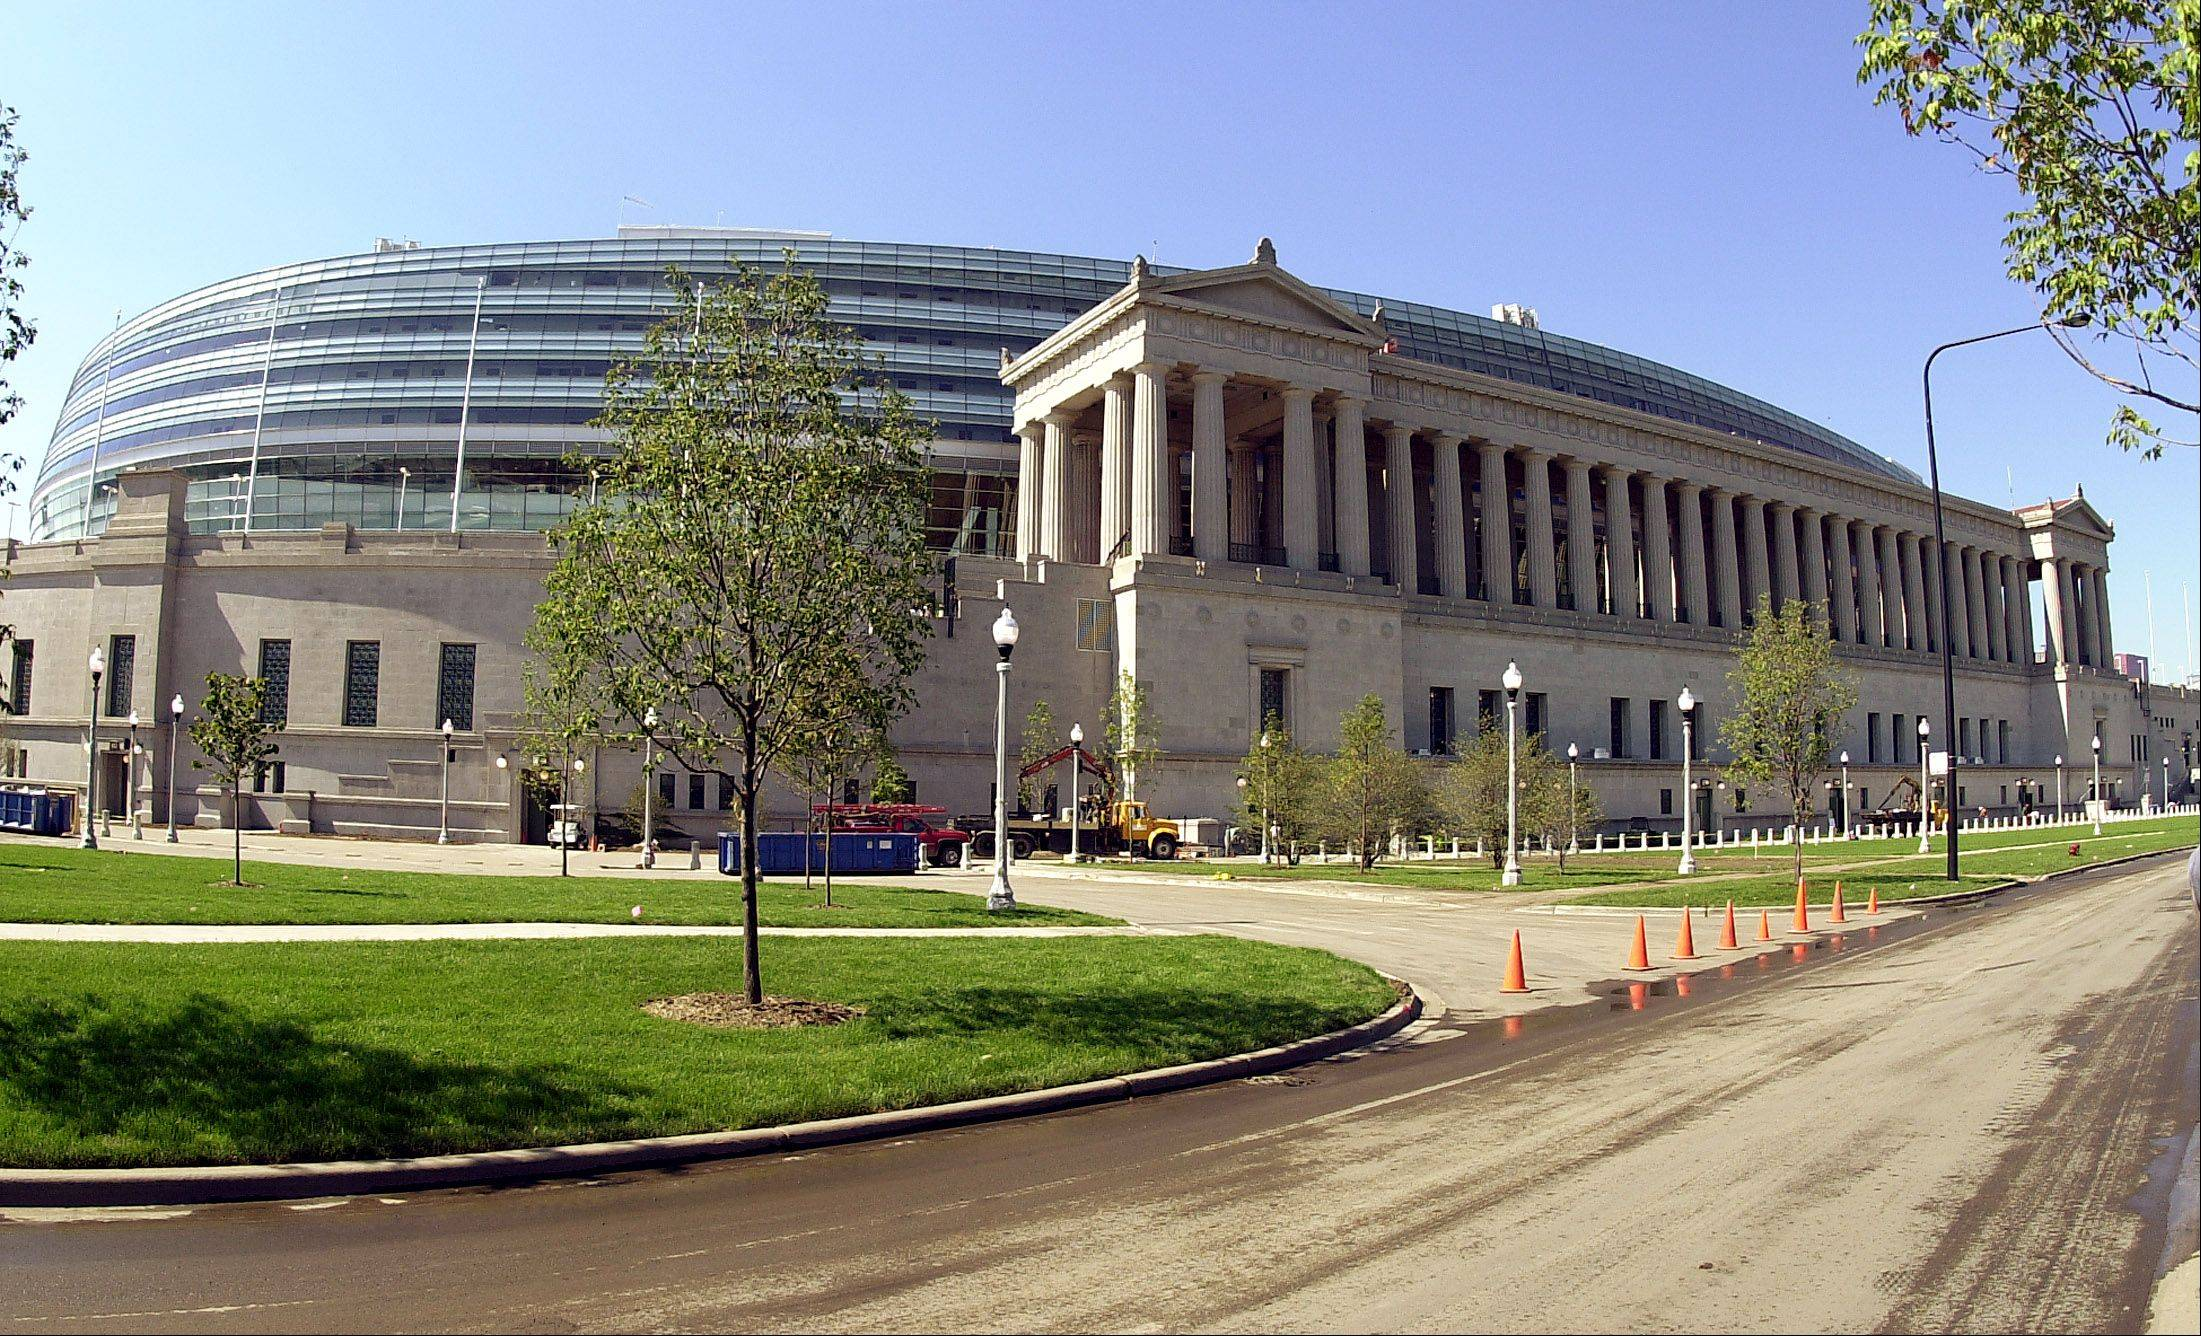 The Blackhawks will host the Pittsburgh Penguins at Soldier Field on March 1.